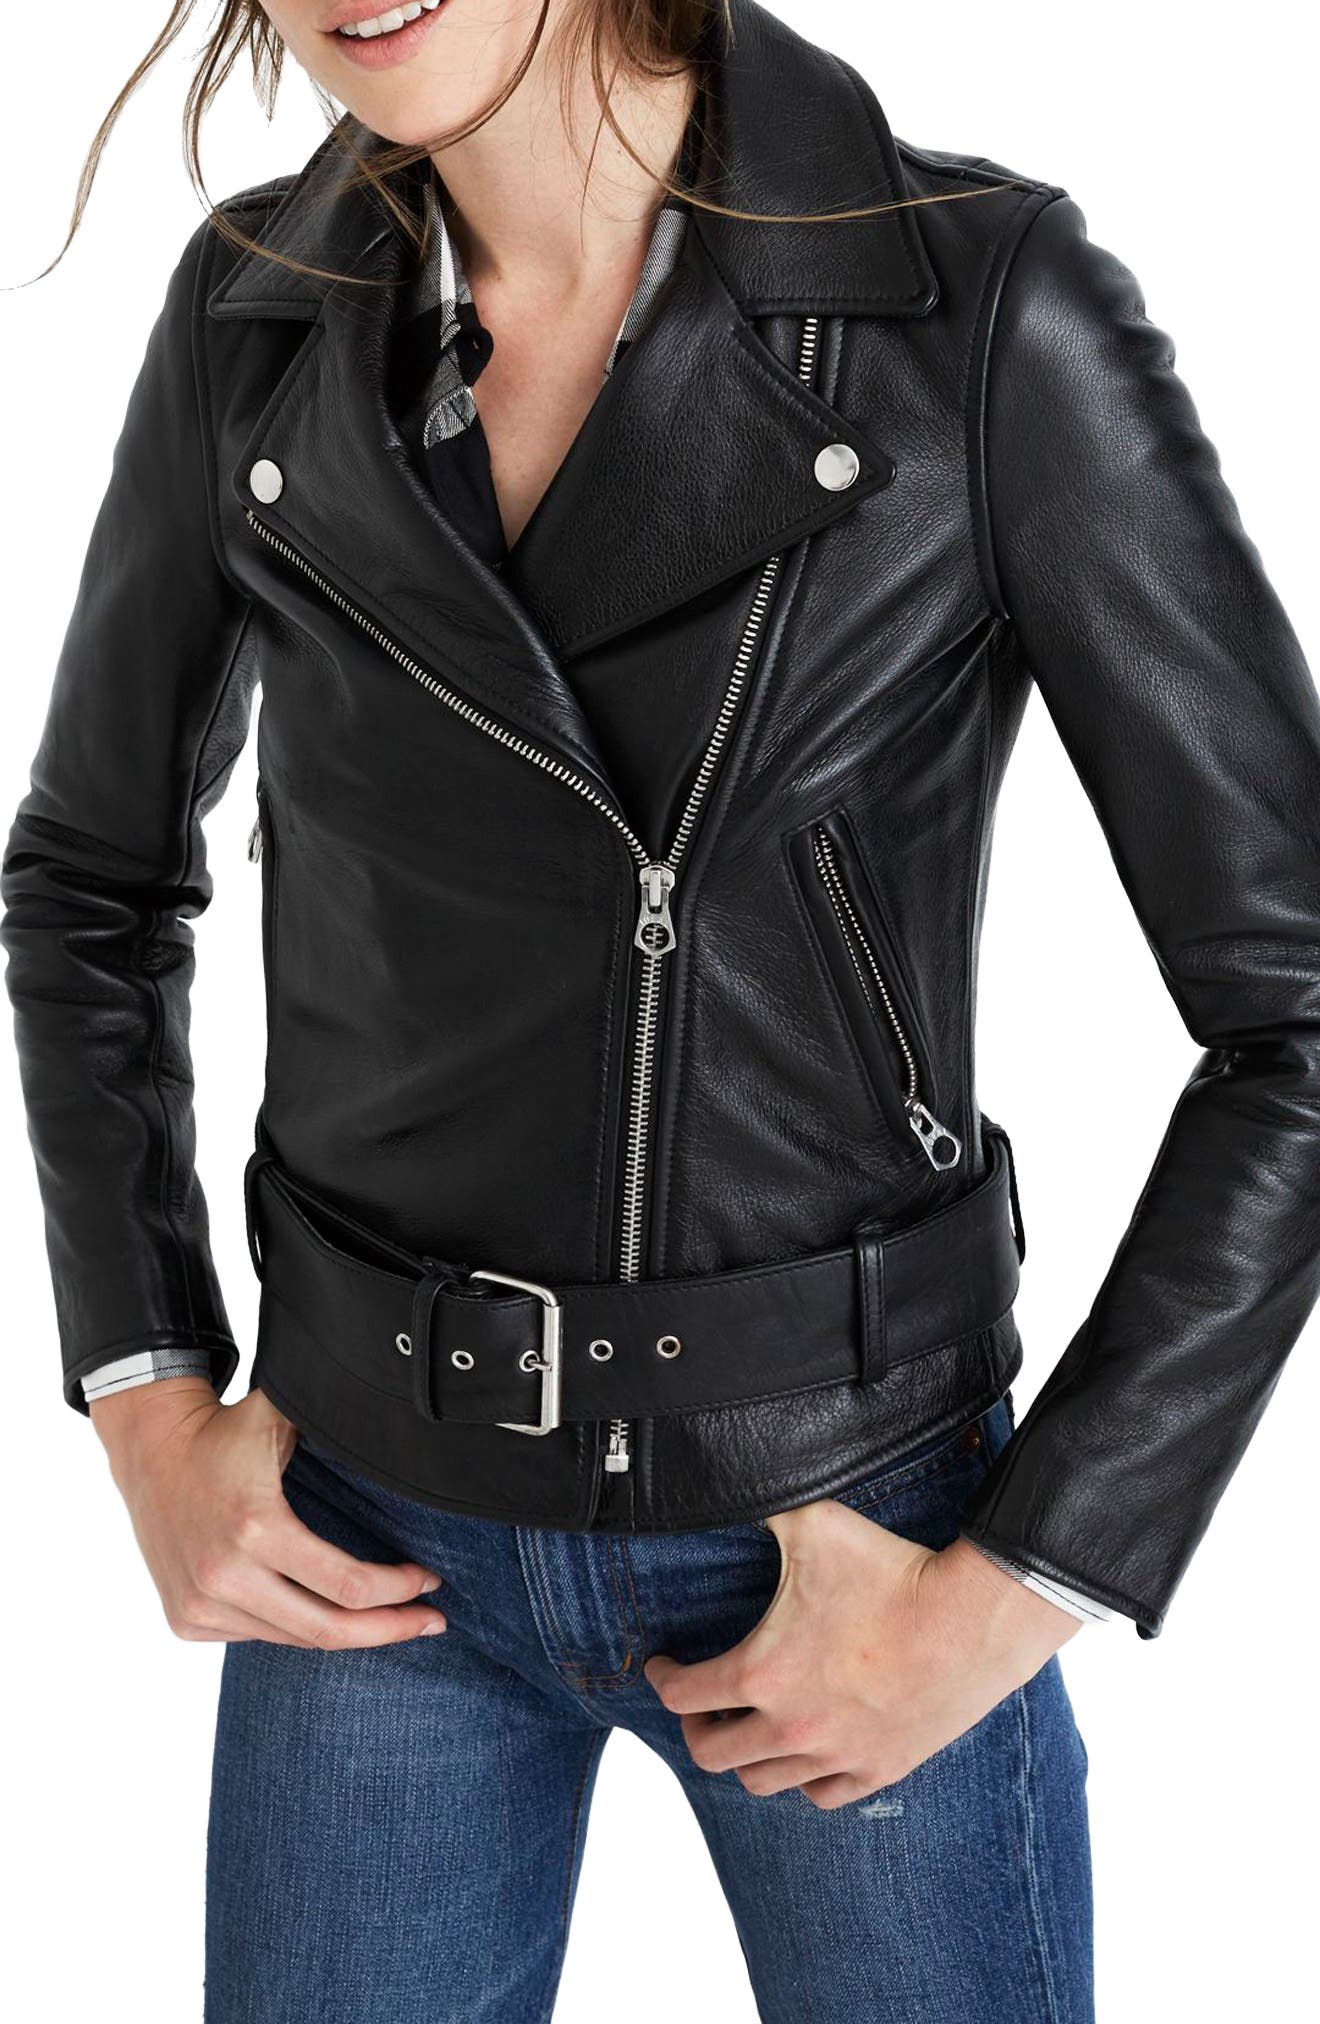 MADEWELL, Ultimate Leather Jacket, Main thumbnail 1, color, TRUE BLACK